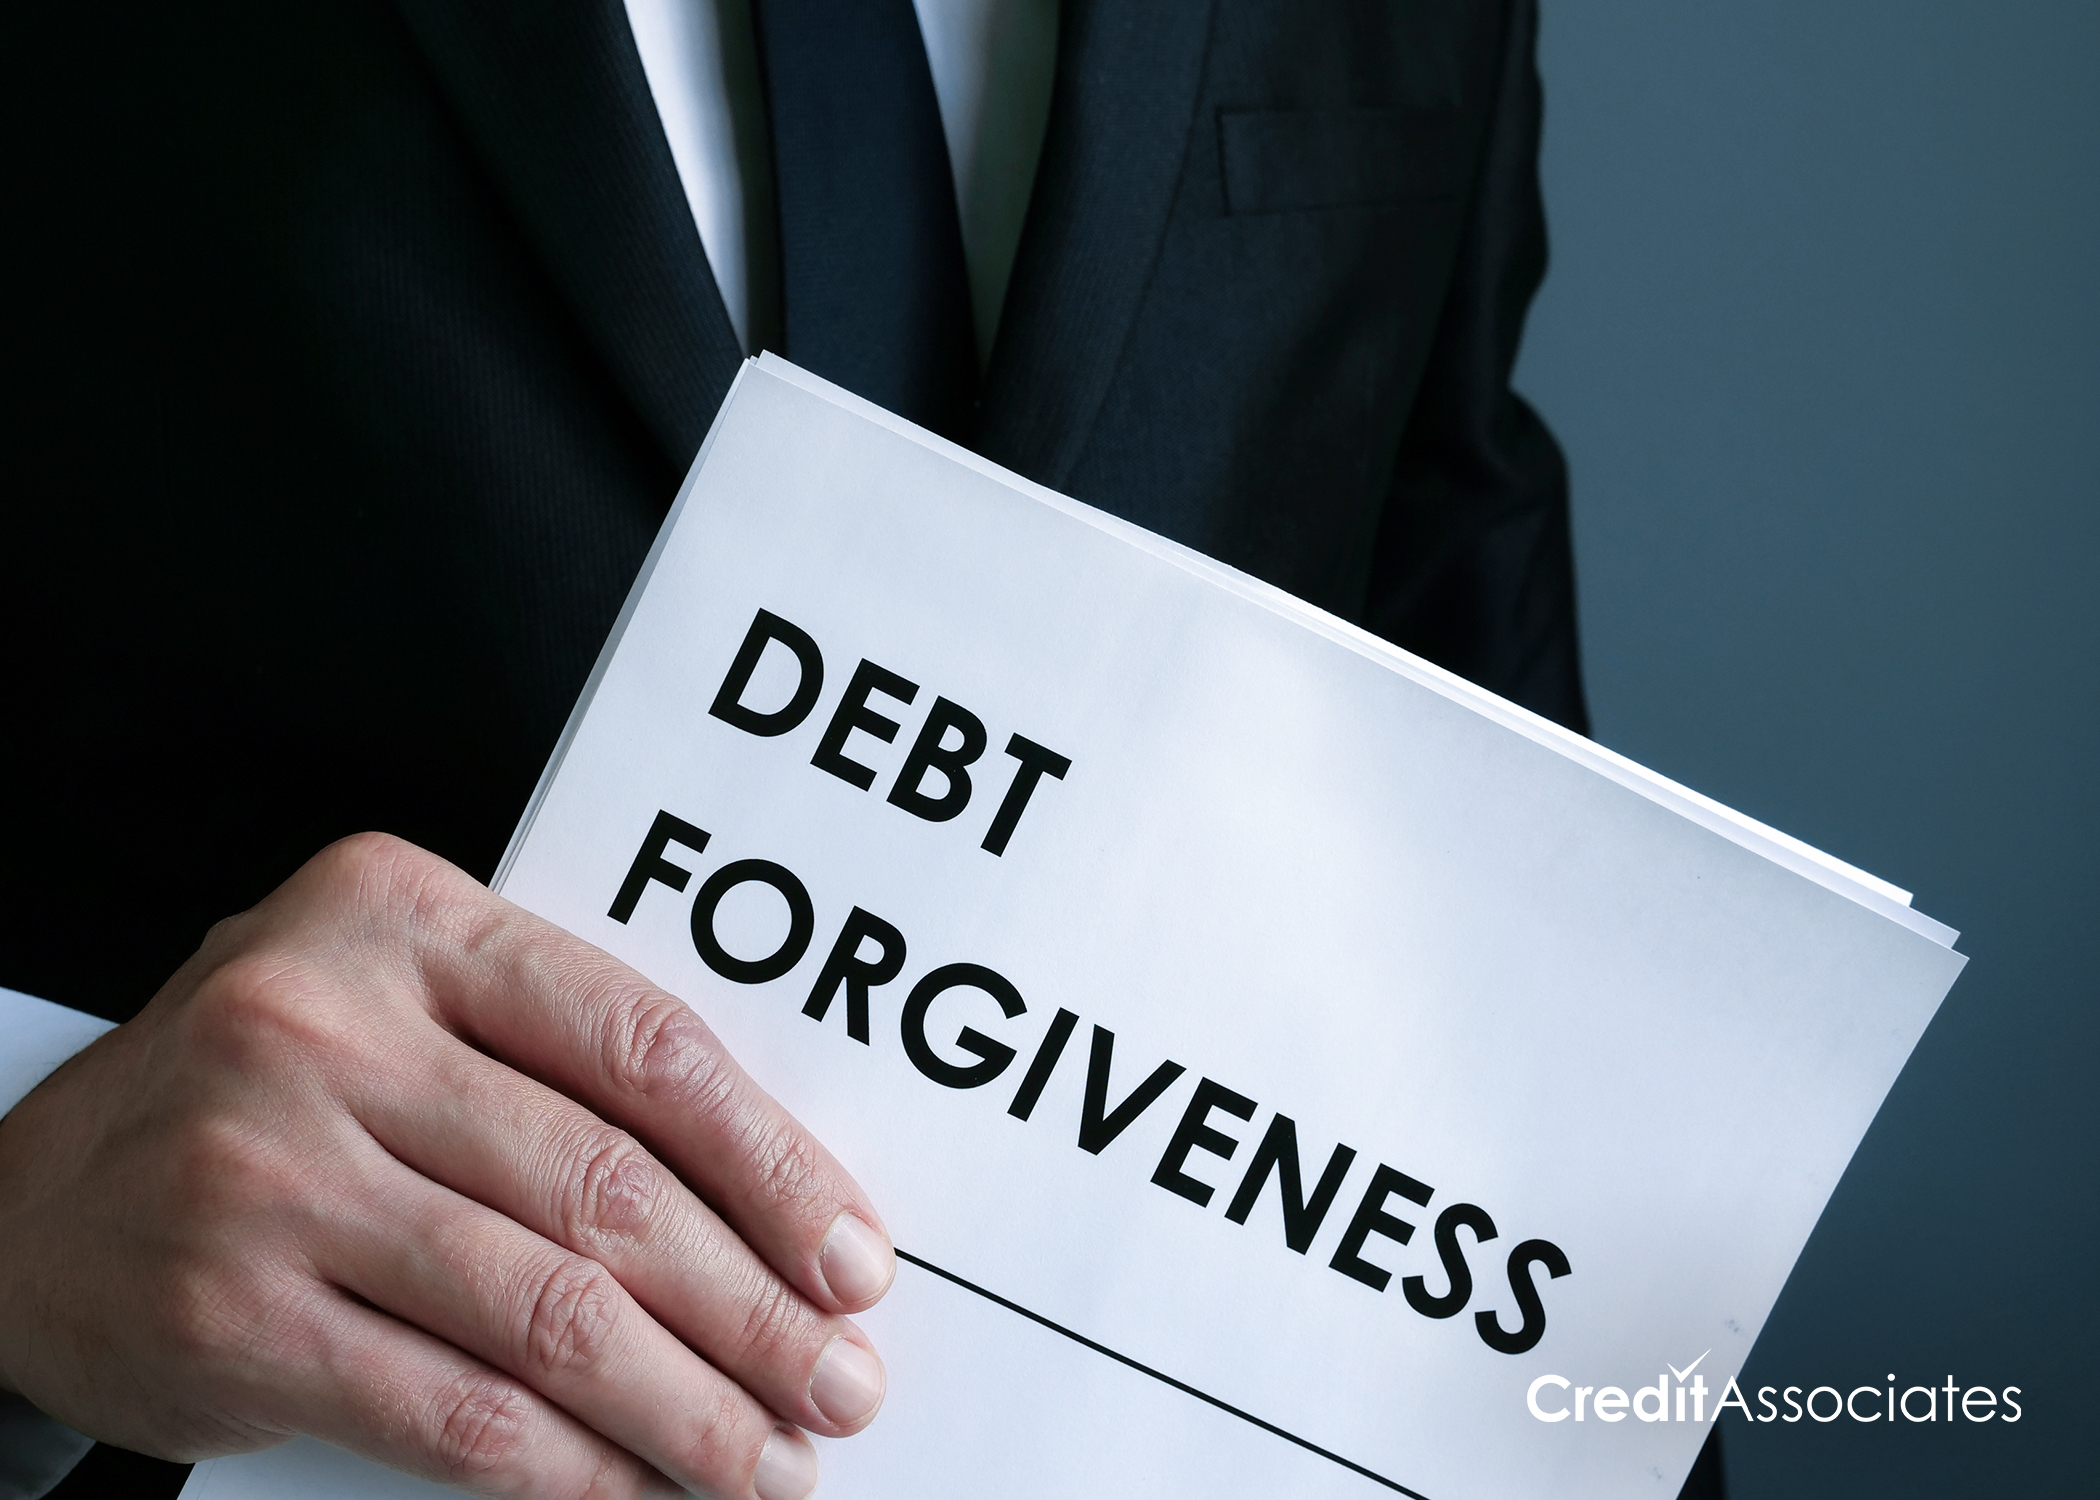 Debt Forgiveness Explained